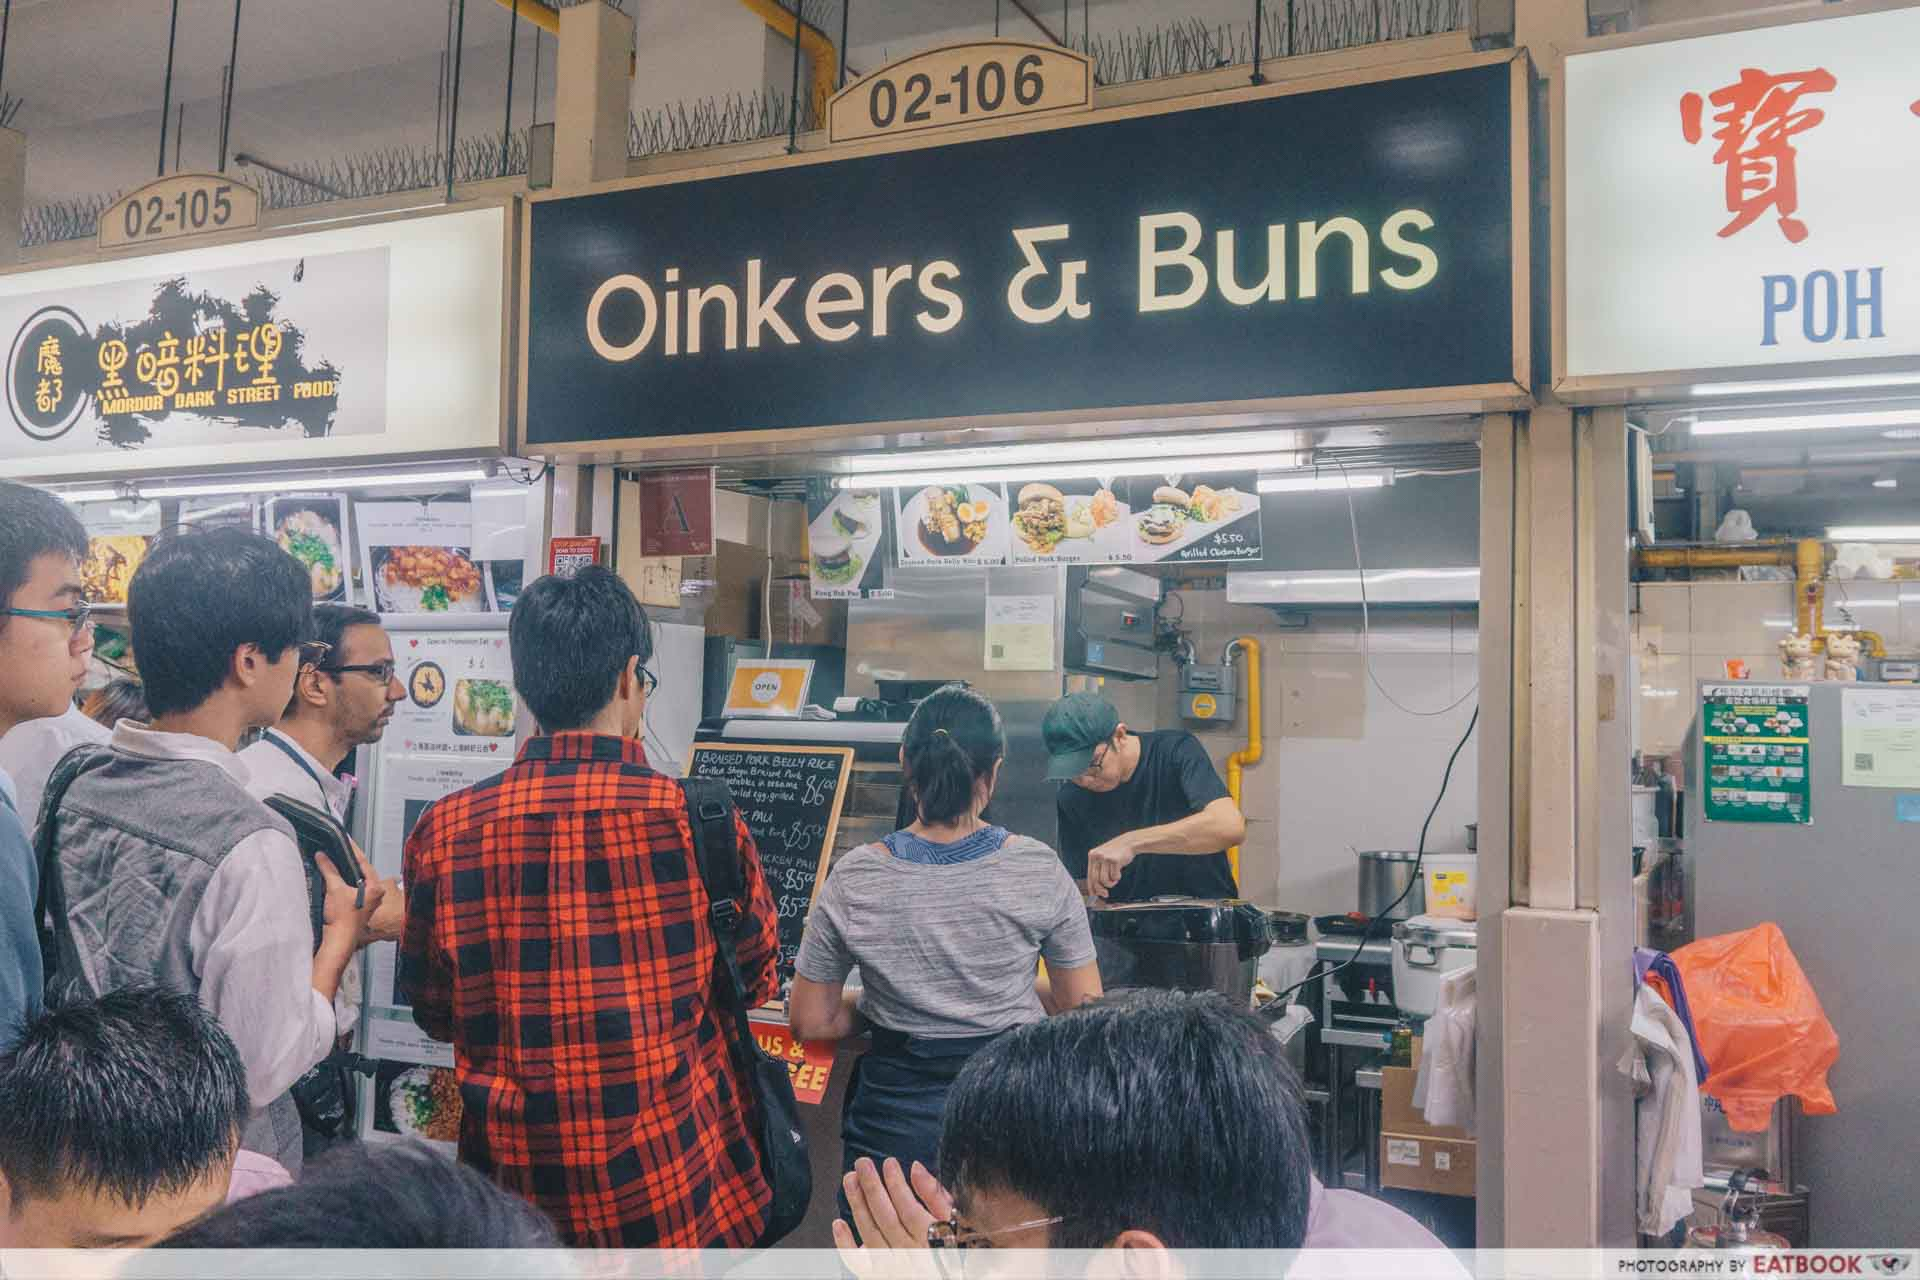 Oinkers & Buns - Storefront